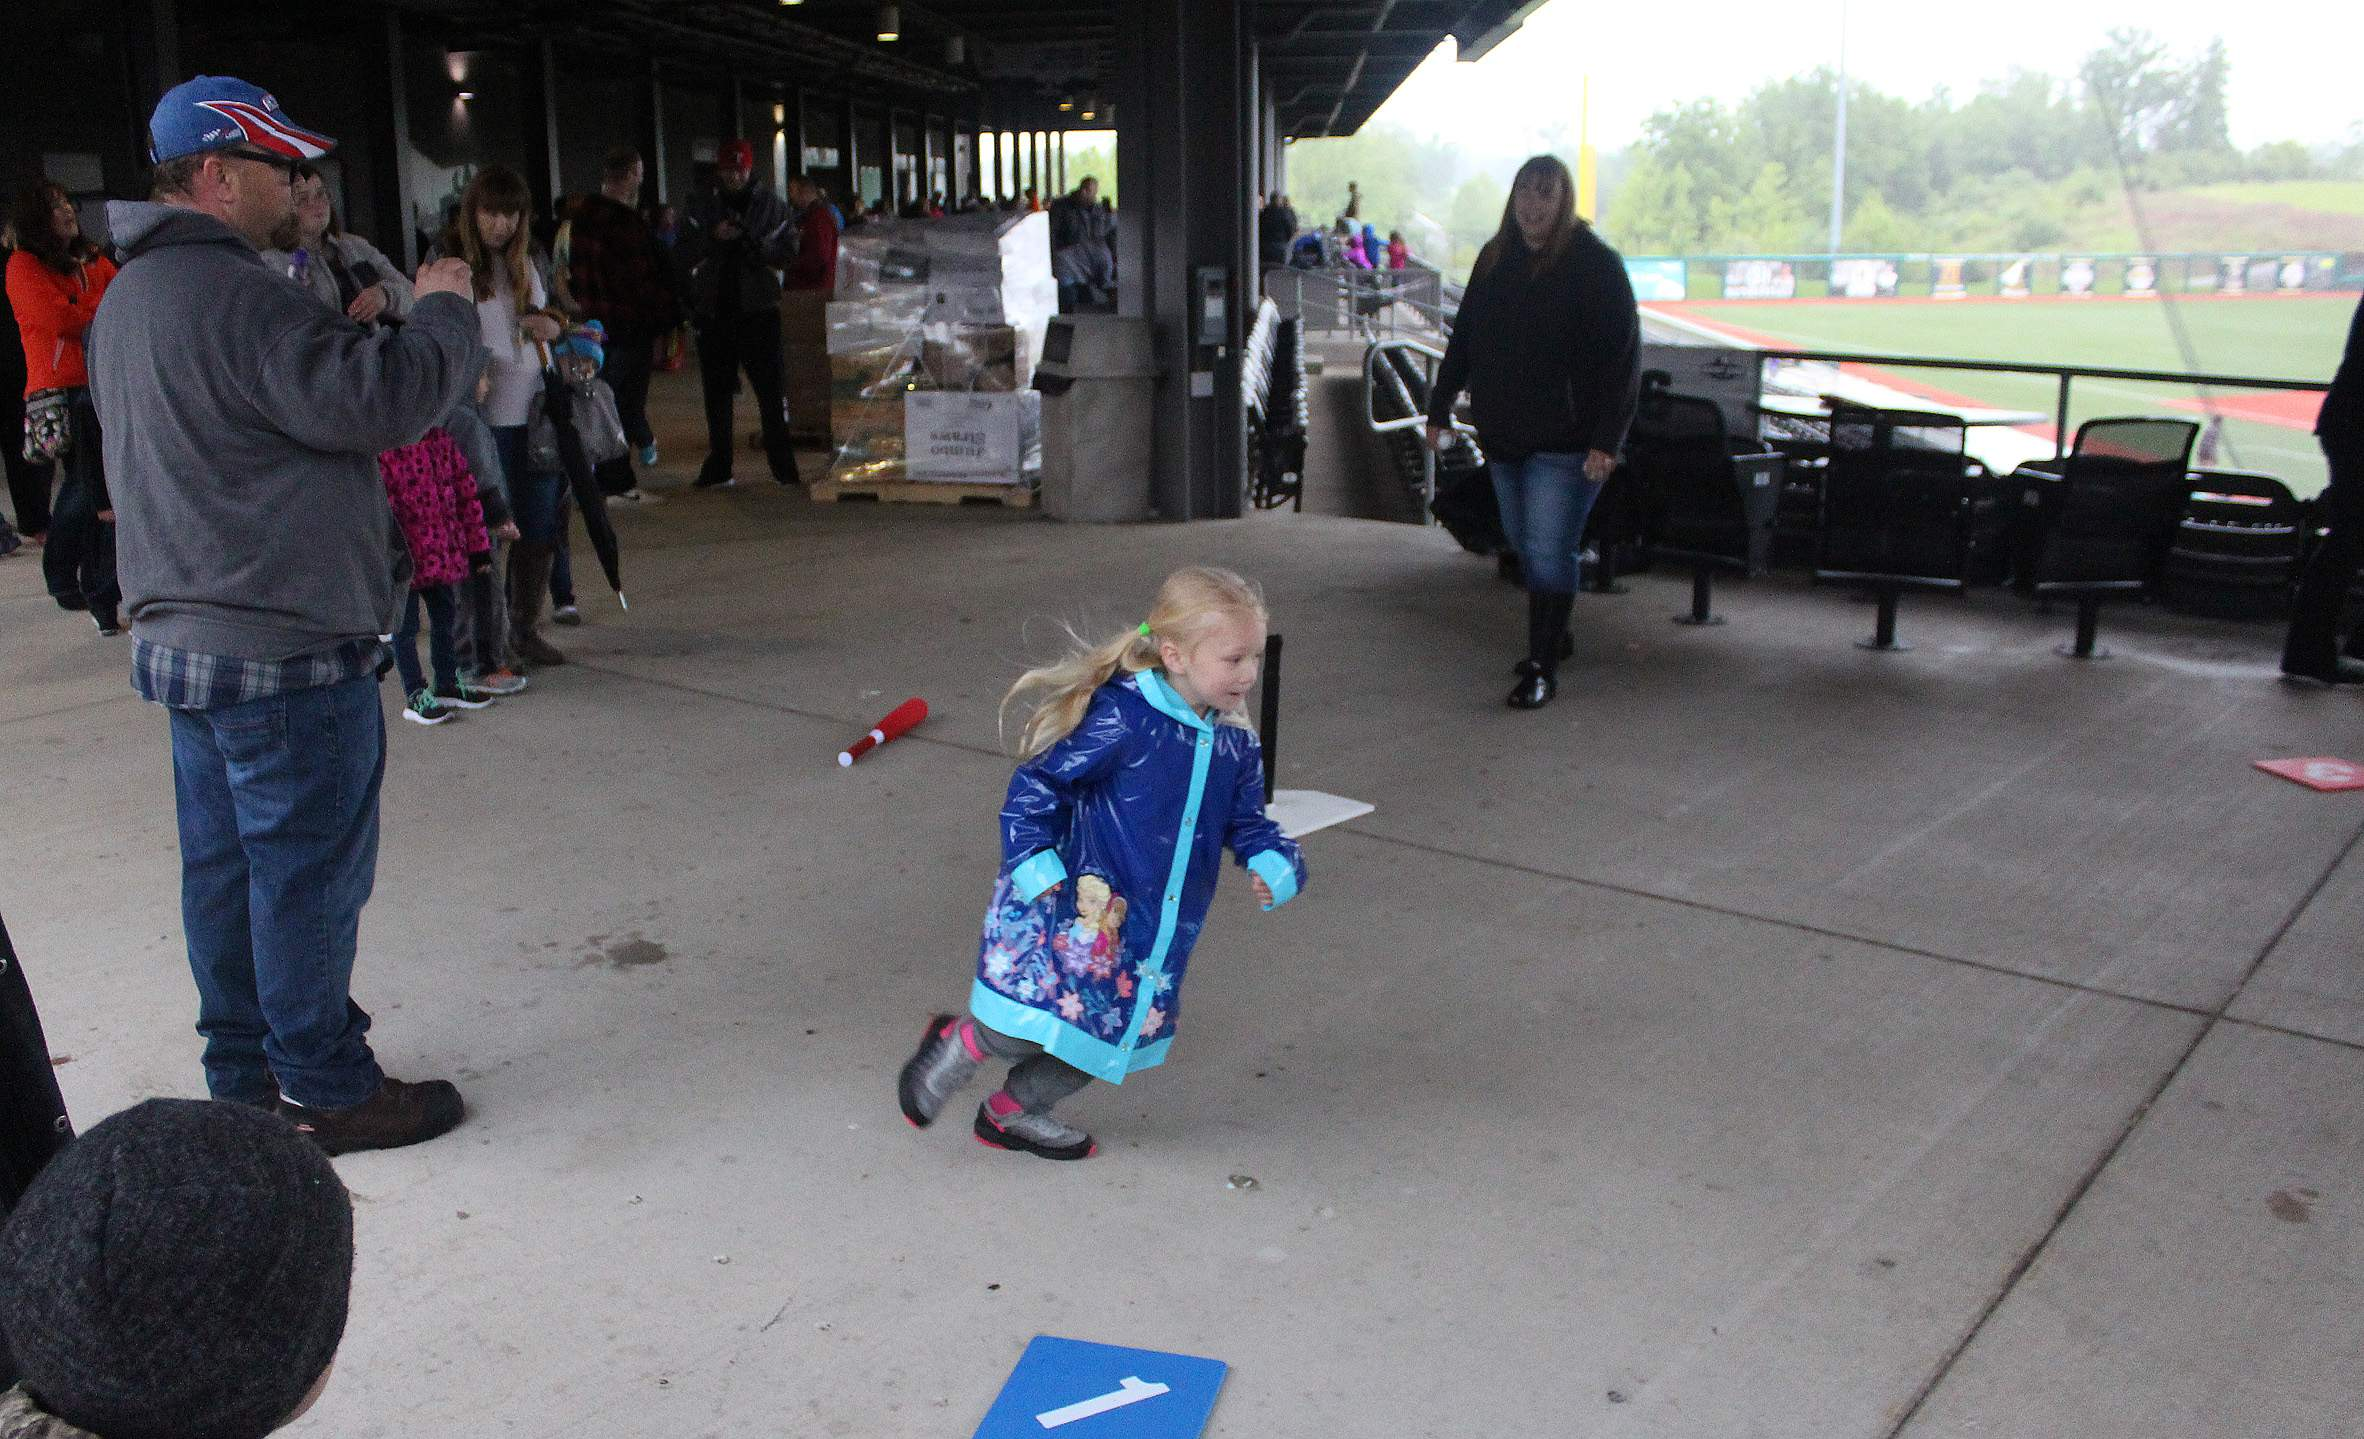 Bristol Williams, 4, of Herrin, rounds the bases on the main concourse at Rent One Park on Thursday, during the Williamson County Early Childhood Cooperative's Family Fun Day. Rain didn't stop the kids in attendance from meeting the mascots of the SI Miners, and even from running the bases in the rain.